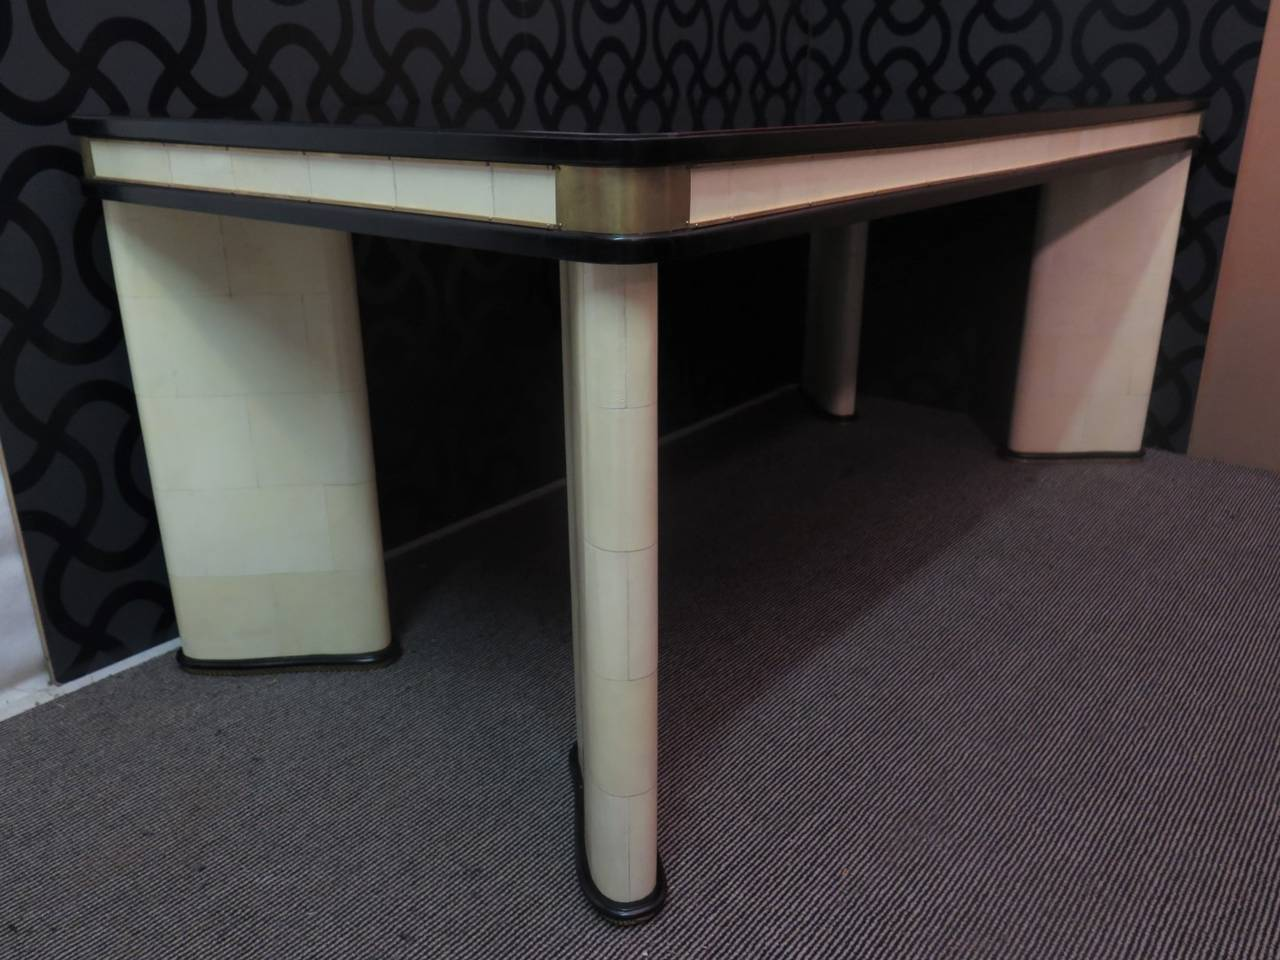 Italian Art Deco table. Composed of three materials, wooden structure then glass and parchment leather. The tabletop is covered by a black glass embedded inside, well rounded on the corners and has a black lacquer frame that runs all around the edge